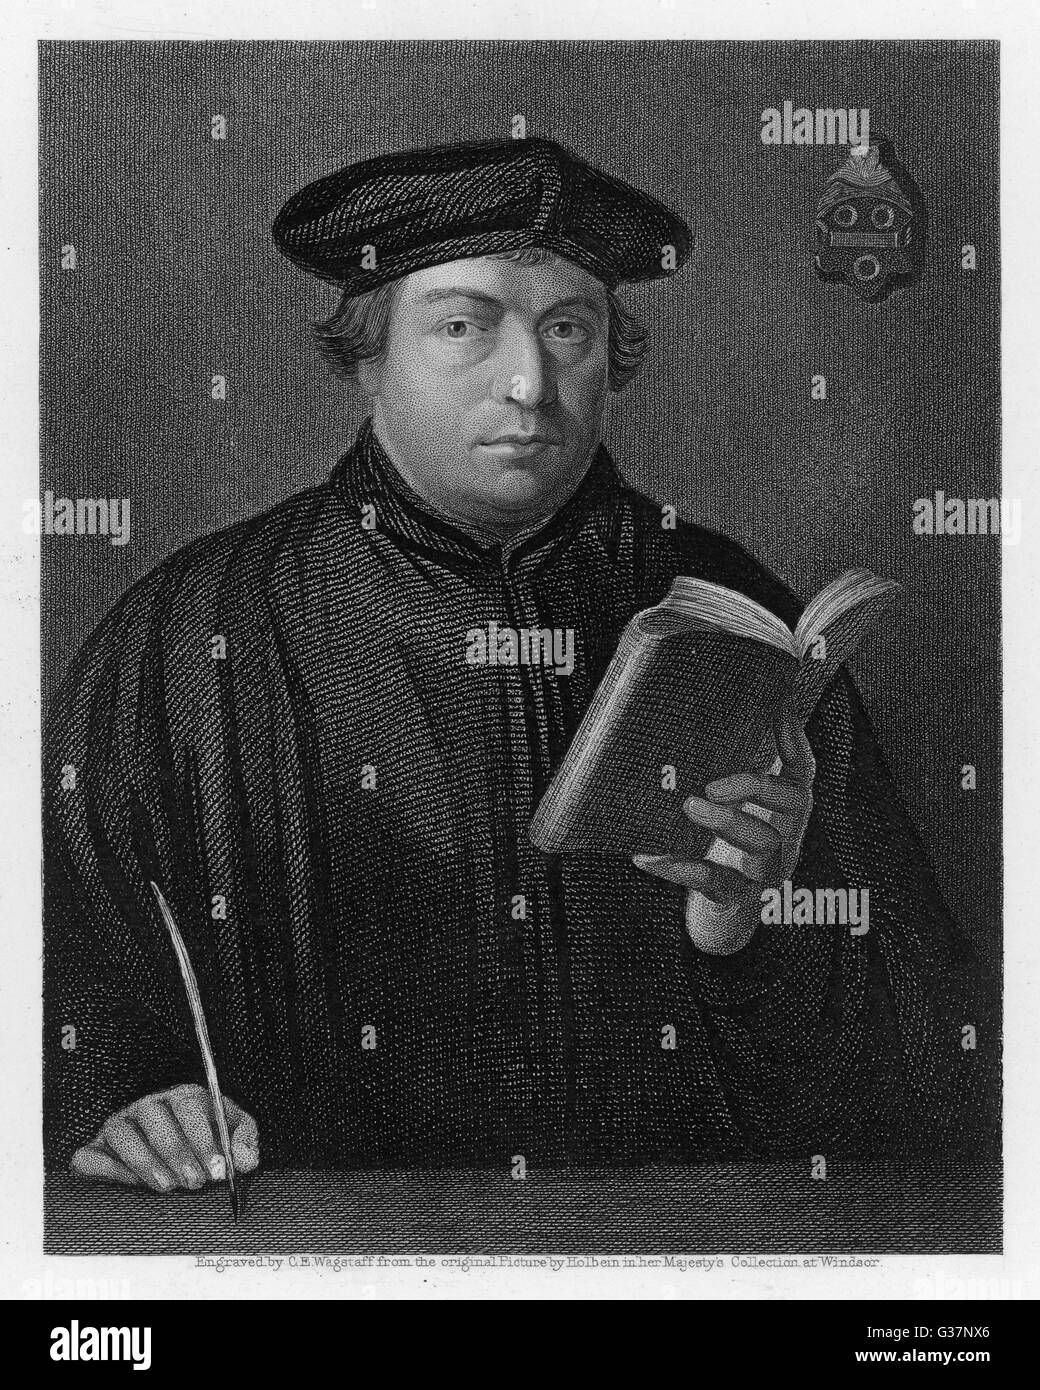 Martin Luther German religious reformer        Date: circa 1510 - Stock Image